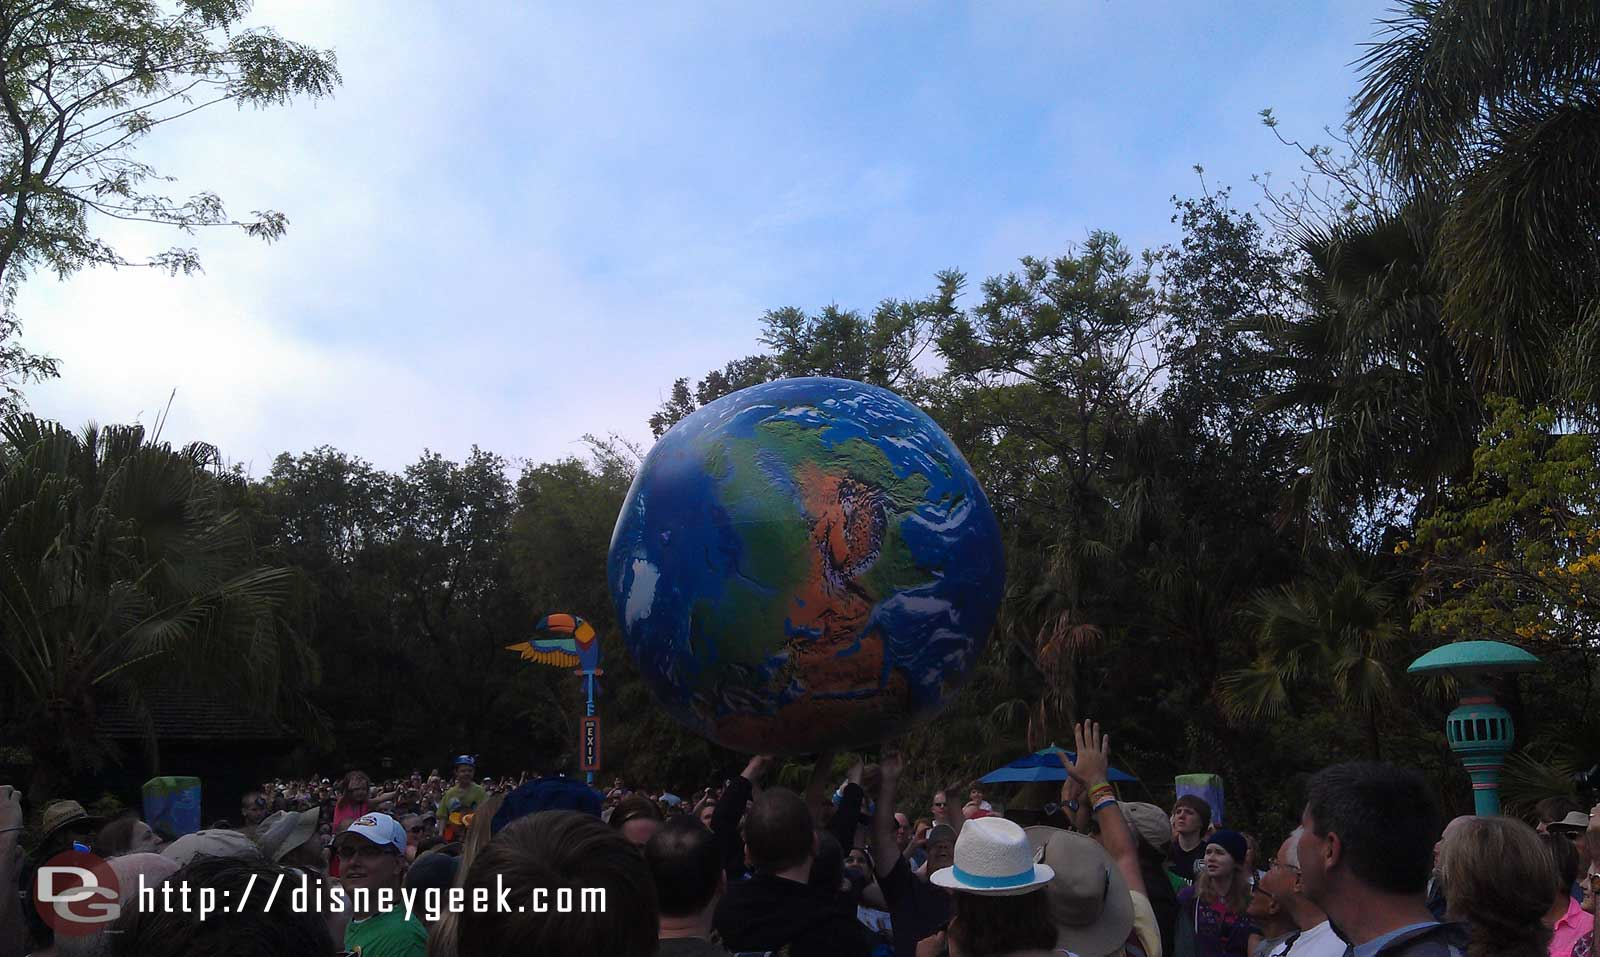 An Earth ball bouncing around the crowd #DAK15